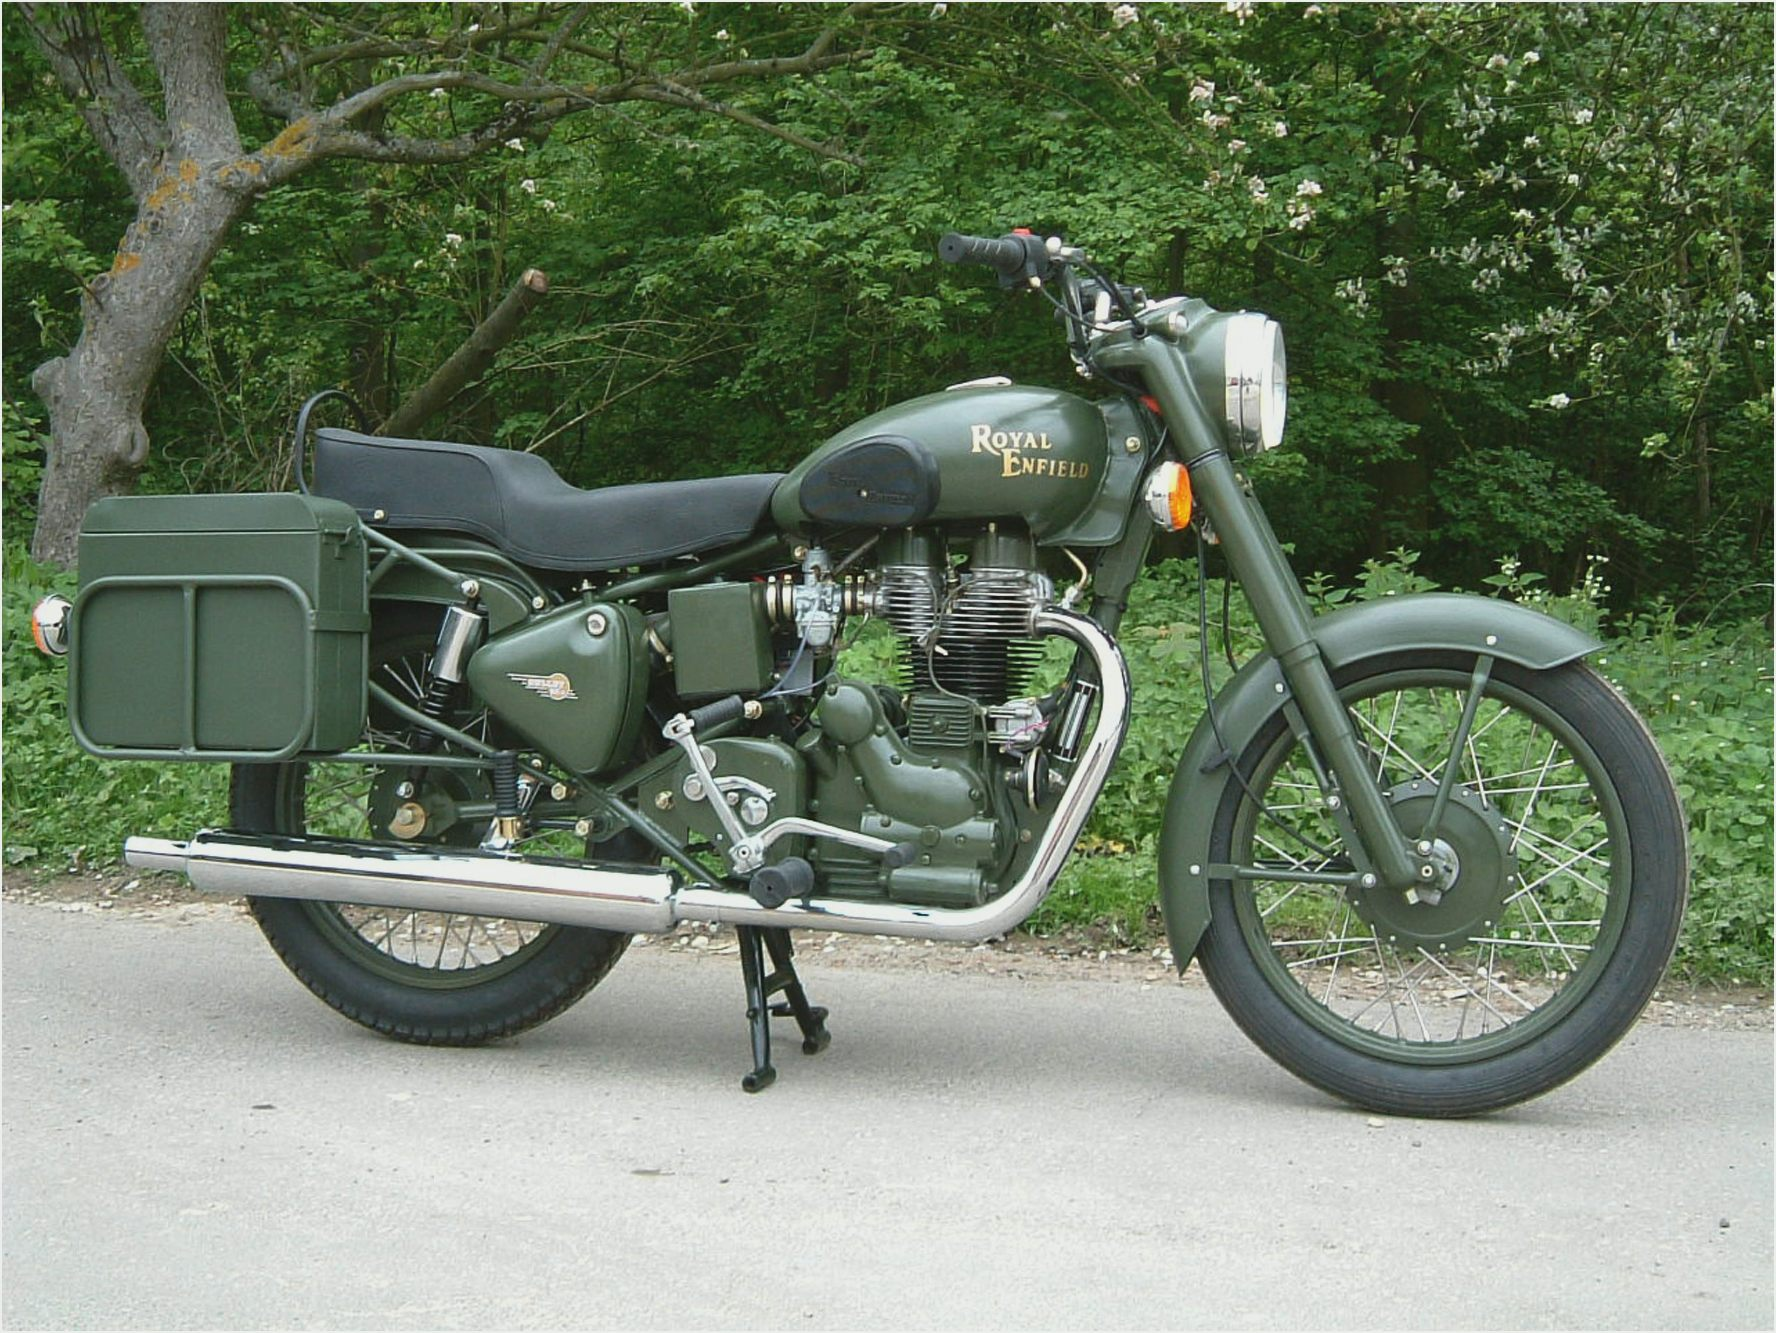 Royal Enfield Bullet 500 Army 1995 images #122802